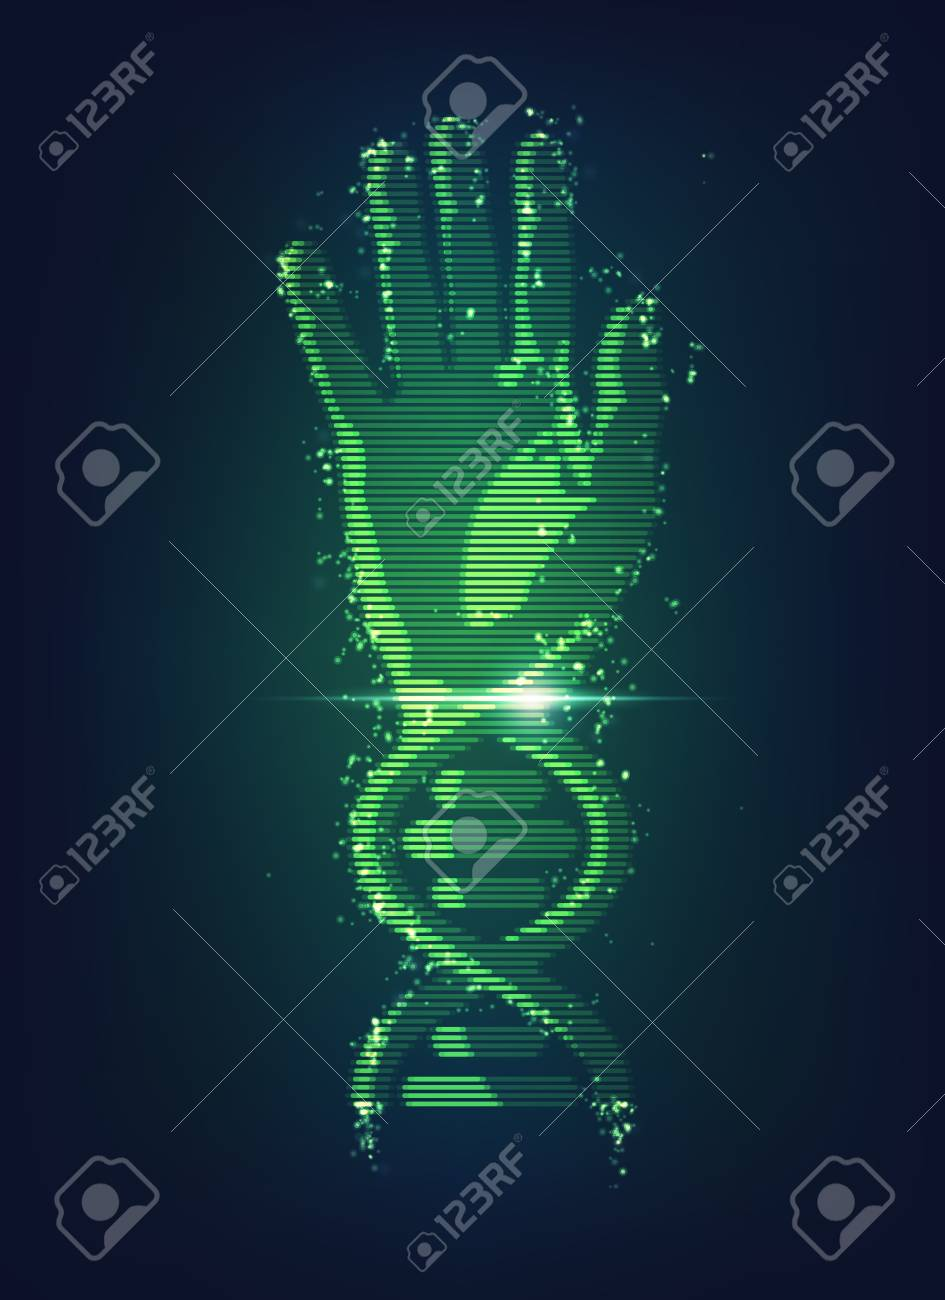 Concept of biometric technology hand combined with dna symbol concept of biometric technology hand combined with dna symbol digital blueprint of body part malvernweather Choice Image